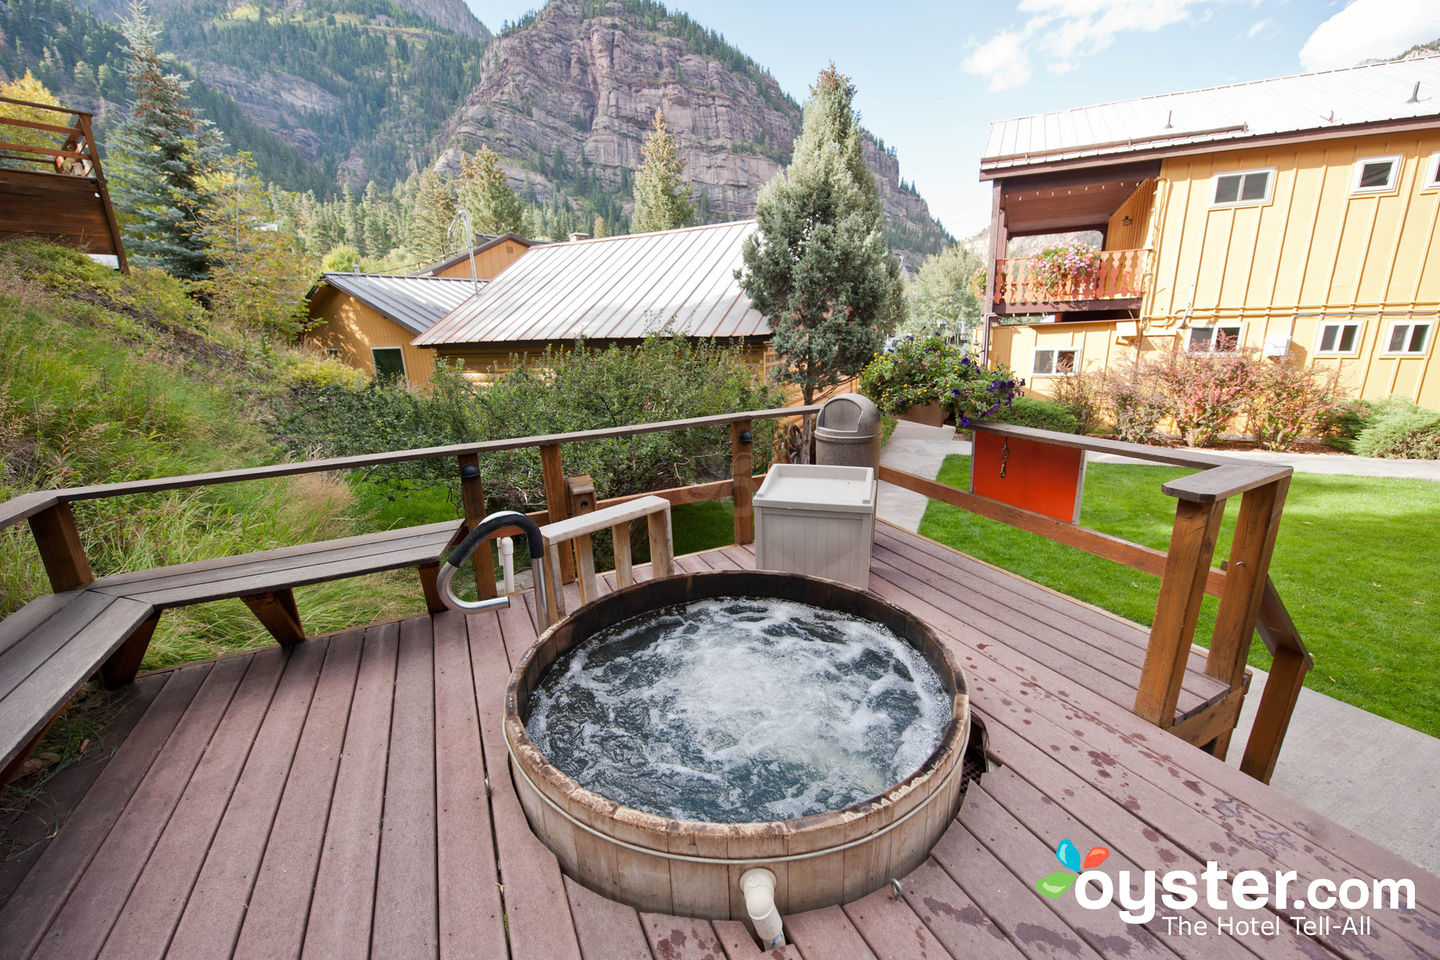 Box Canyon Lodge  Hot Springs Detailed Review Photos